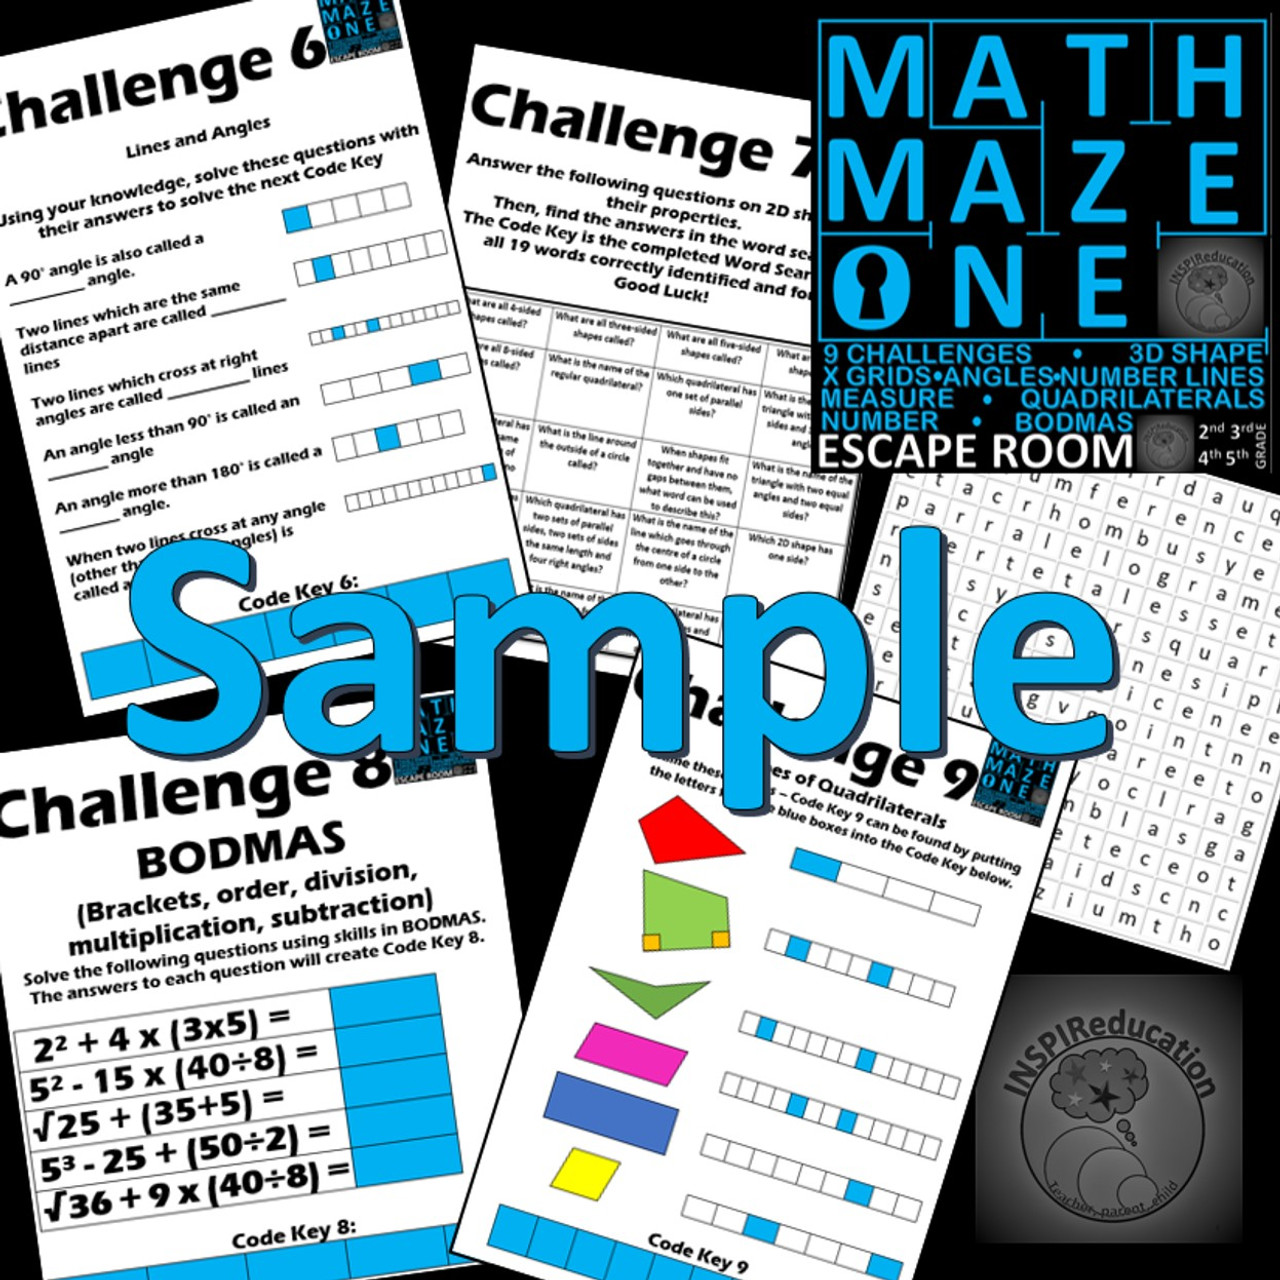 Math Escape Room - Math Maze One - Number and Shape: 9 Challenges